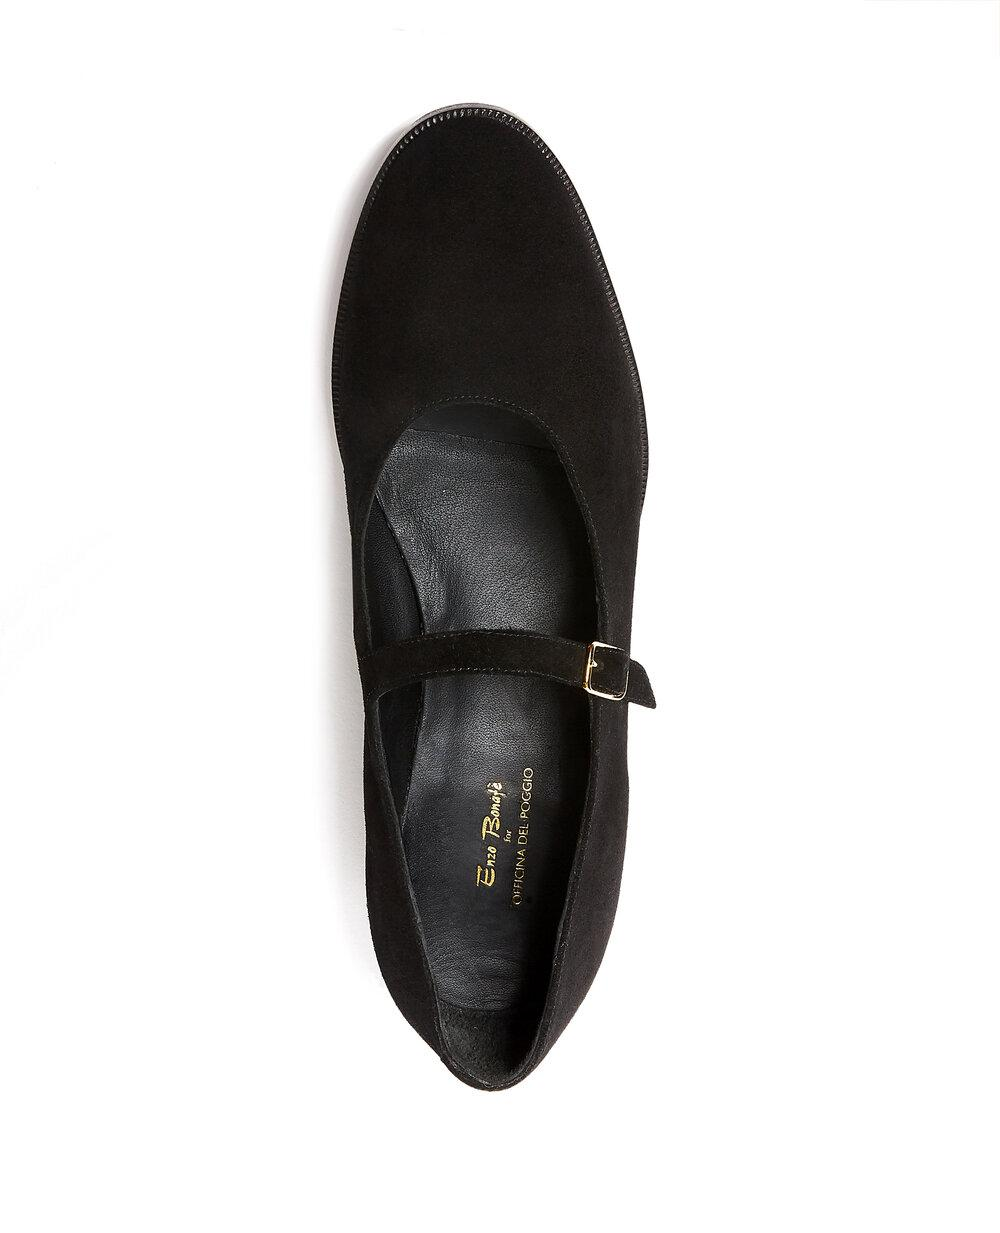 ODPEssentials Classic Mary Jane - Black Suede 2